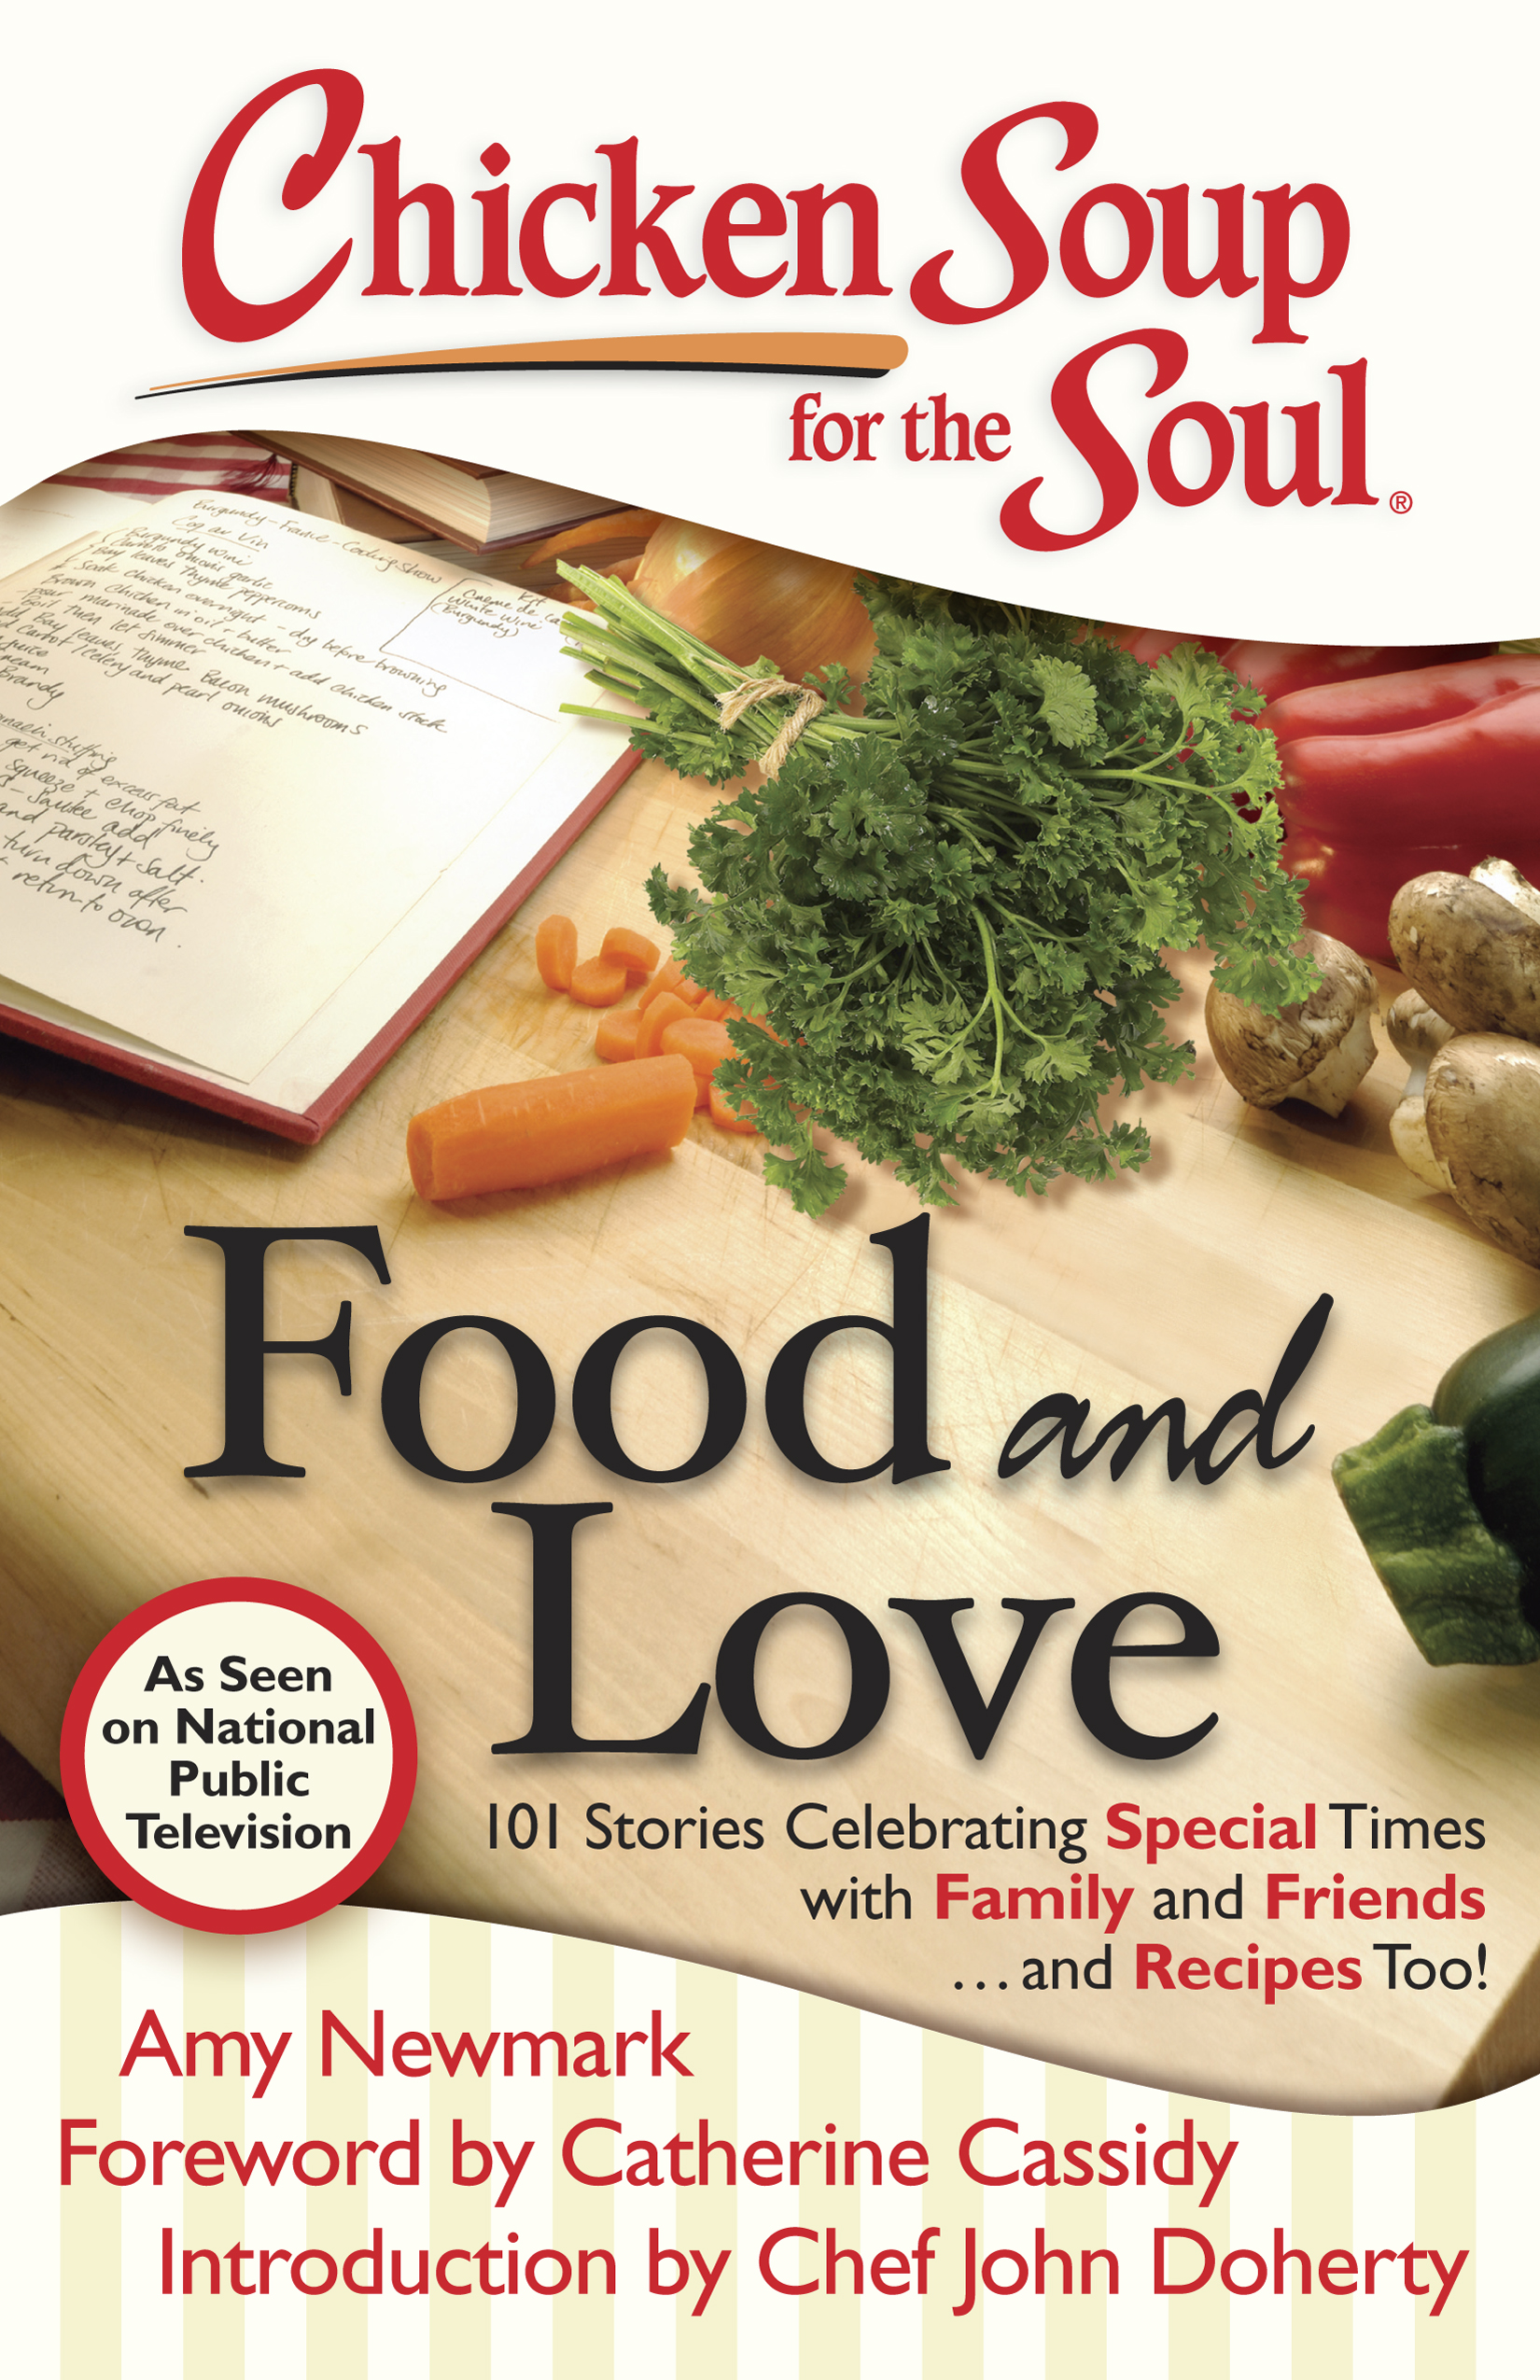 Chicken soup for the soul food and love book by amy newmark book cover image jpg chicken soup for the soul food and love forumfinder Choice Image